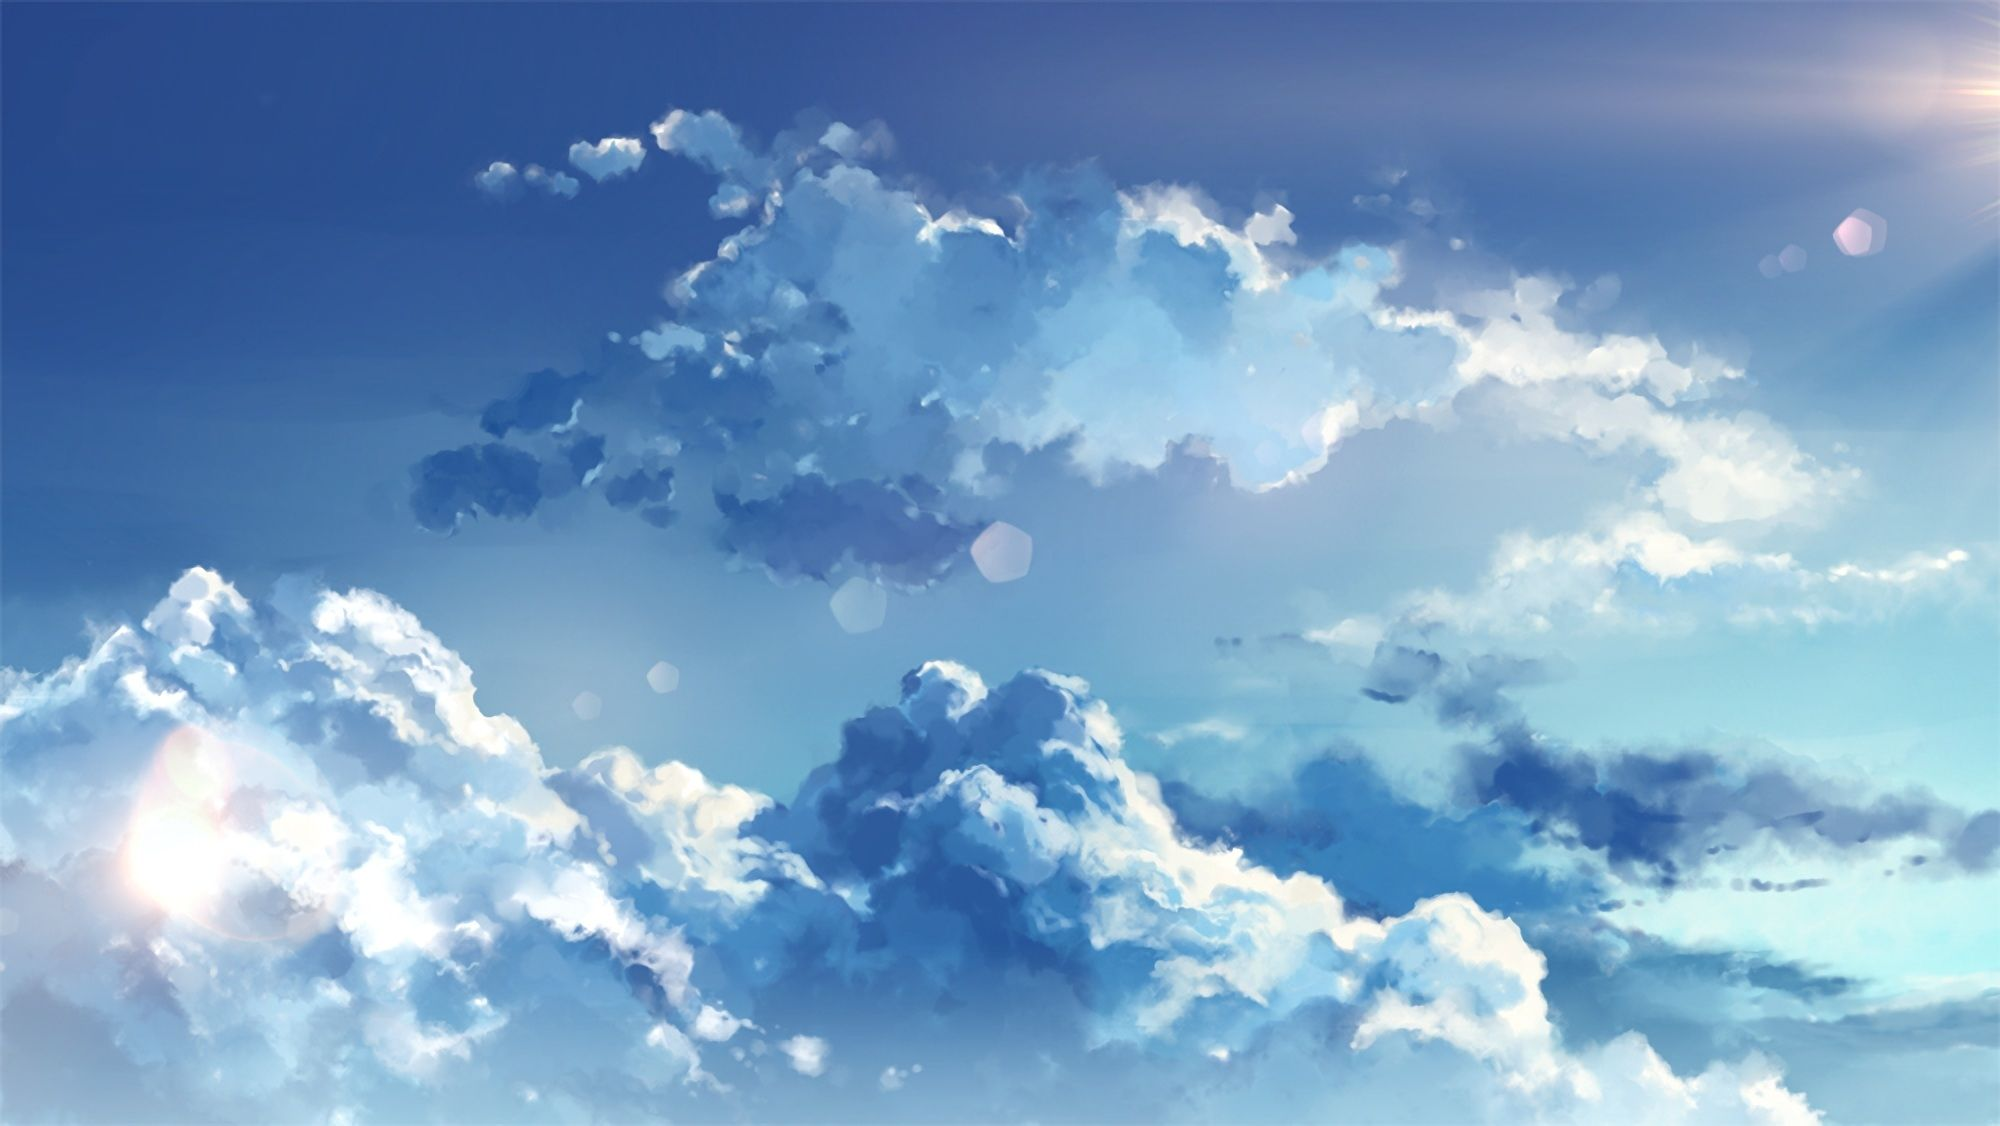 Anime Cloud Wallpapers Top Free Anime Cloud Backgrounds Wallpaperaccess